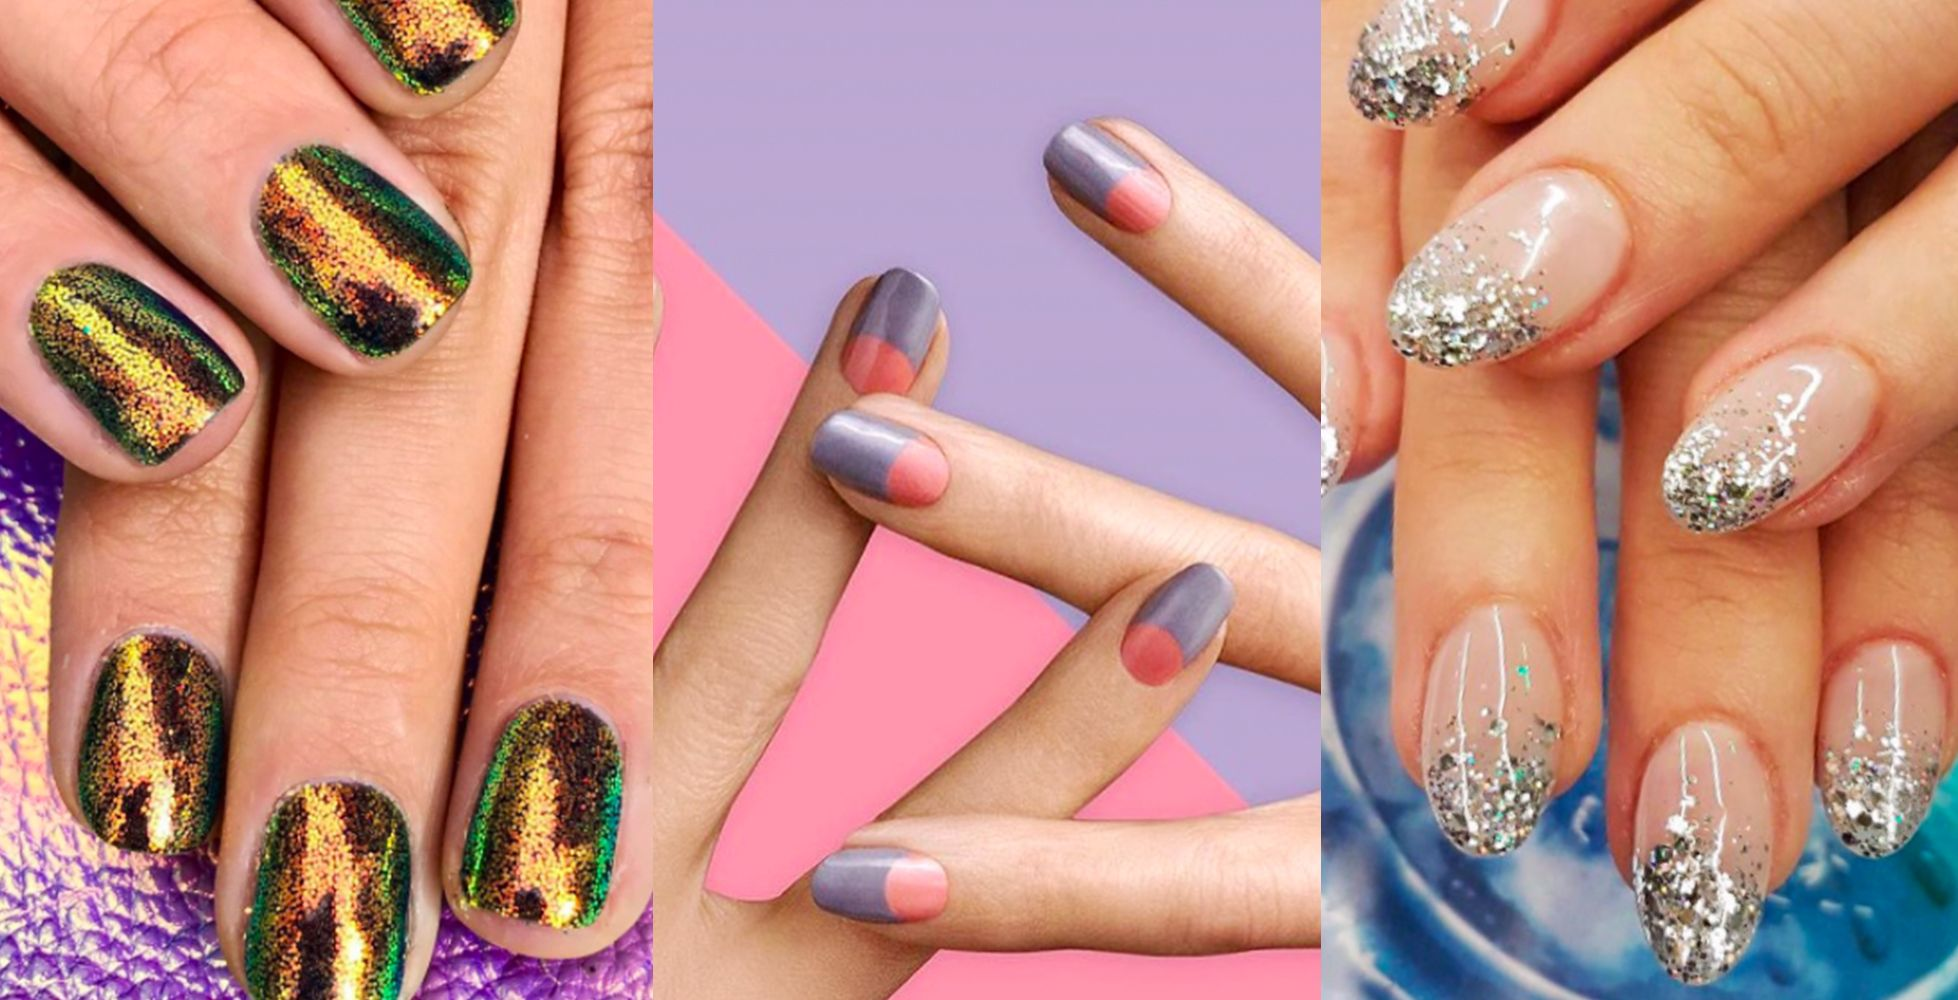 10 Nail Designs To Try in 2018